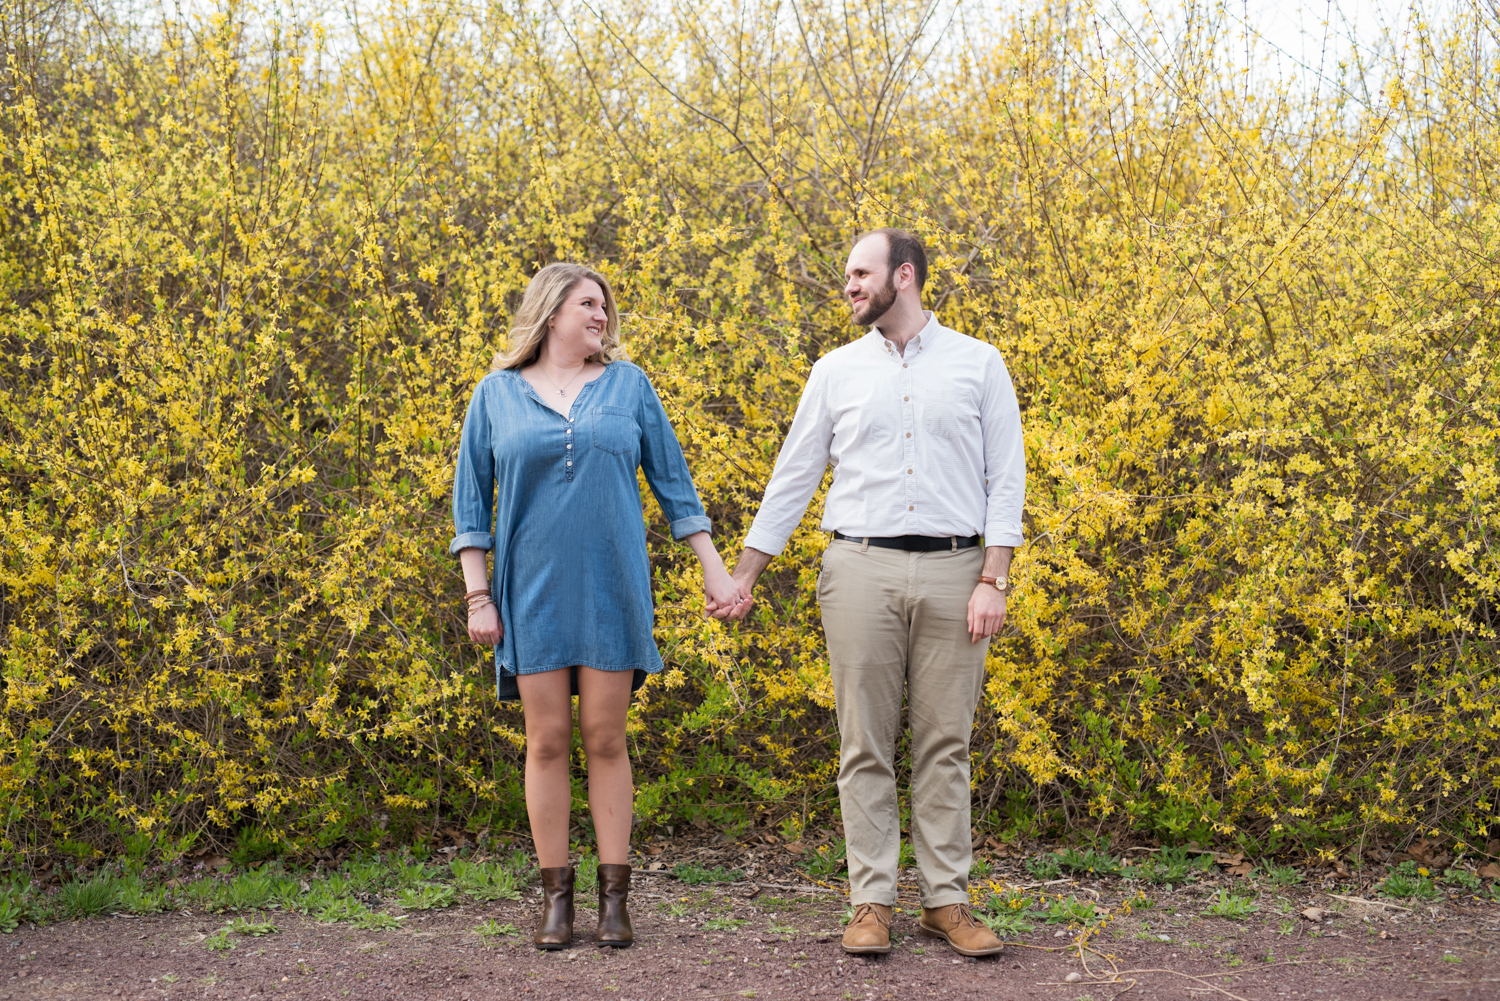 Matt+Melissa- Meadowlands Environmental Center Engagement Session- New Jersey- Olivia Christina Photo-22.JPG